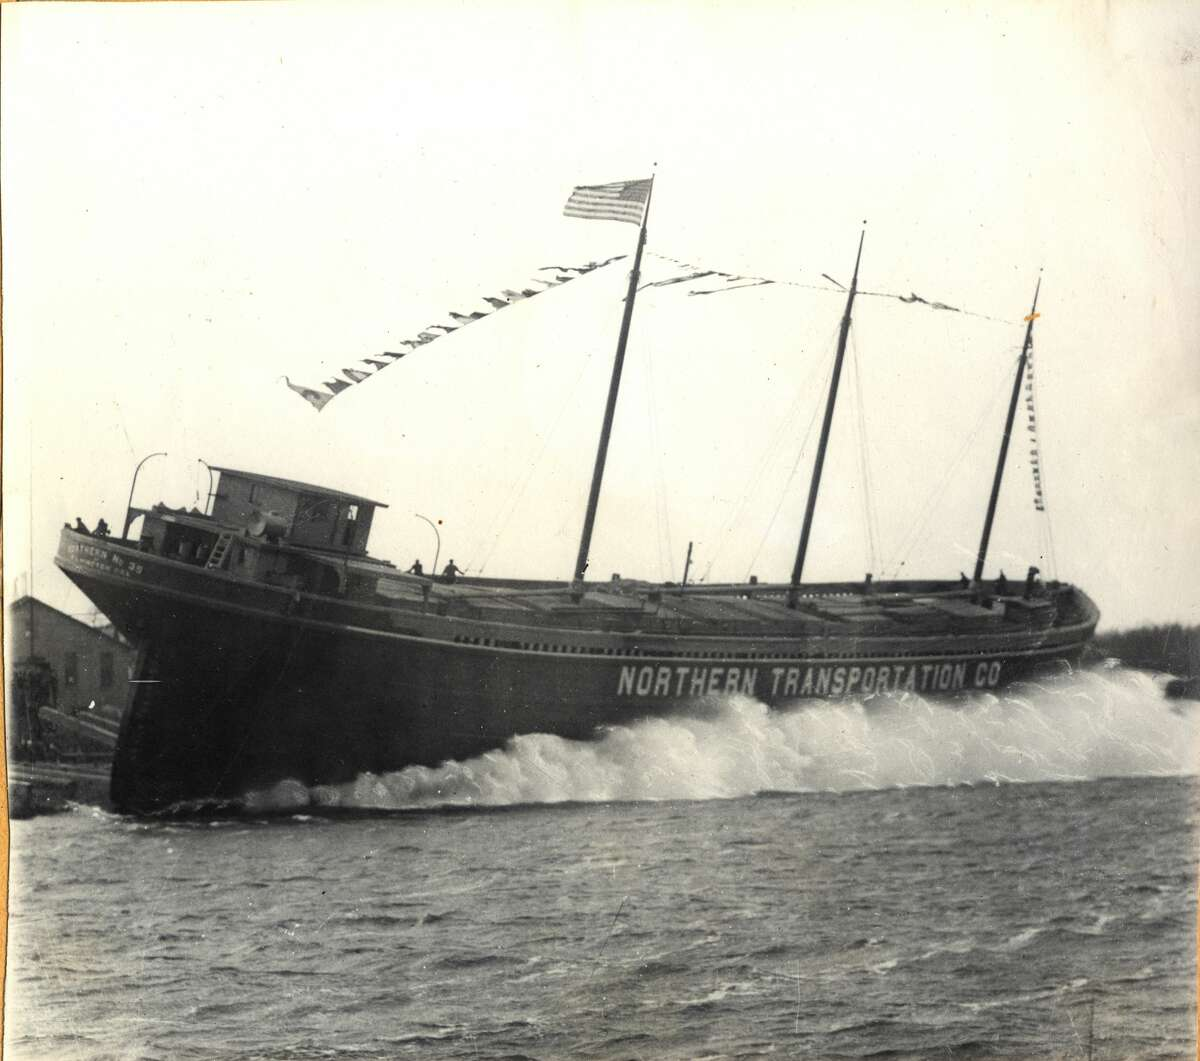 The NORTHERN #35 was launched in Manistee on May 13, 1920. The vessel was the last one constructed by the Manistee Shipbuilding Co. which would cease operations later that year.